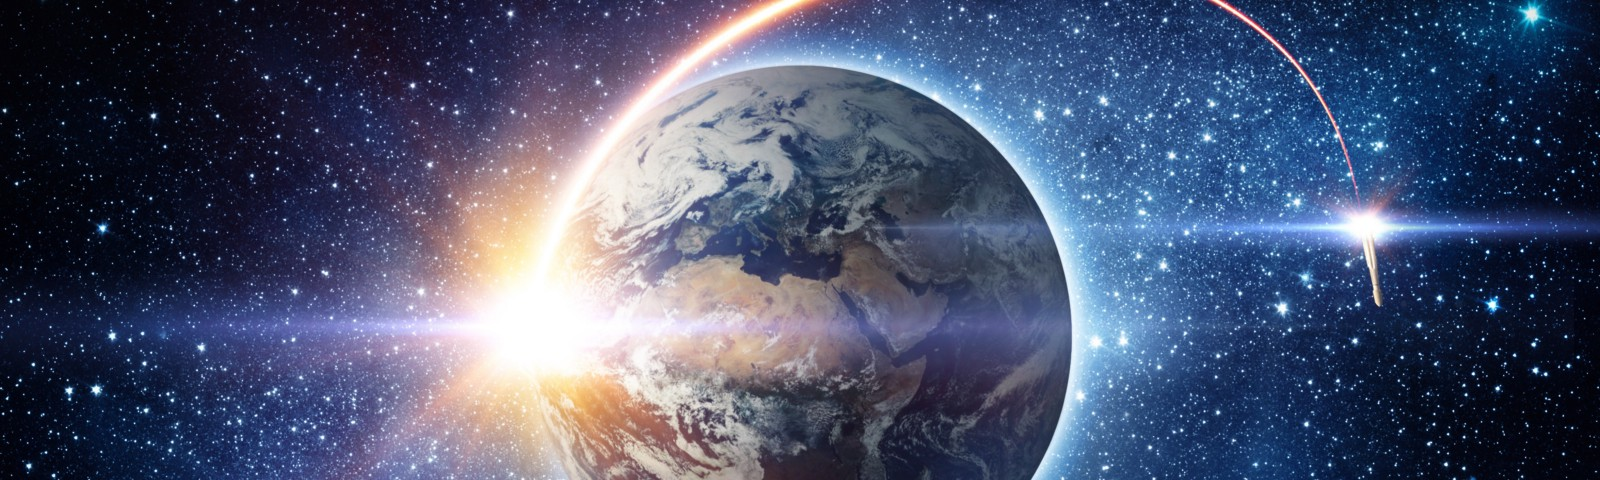 The stage of maturity — Earth observation in a new era of